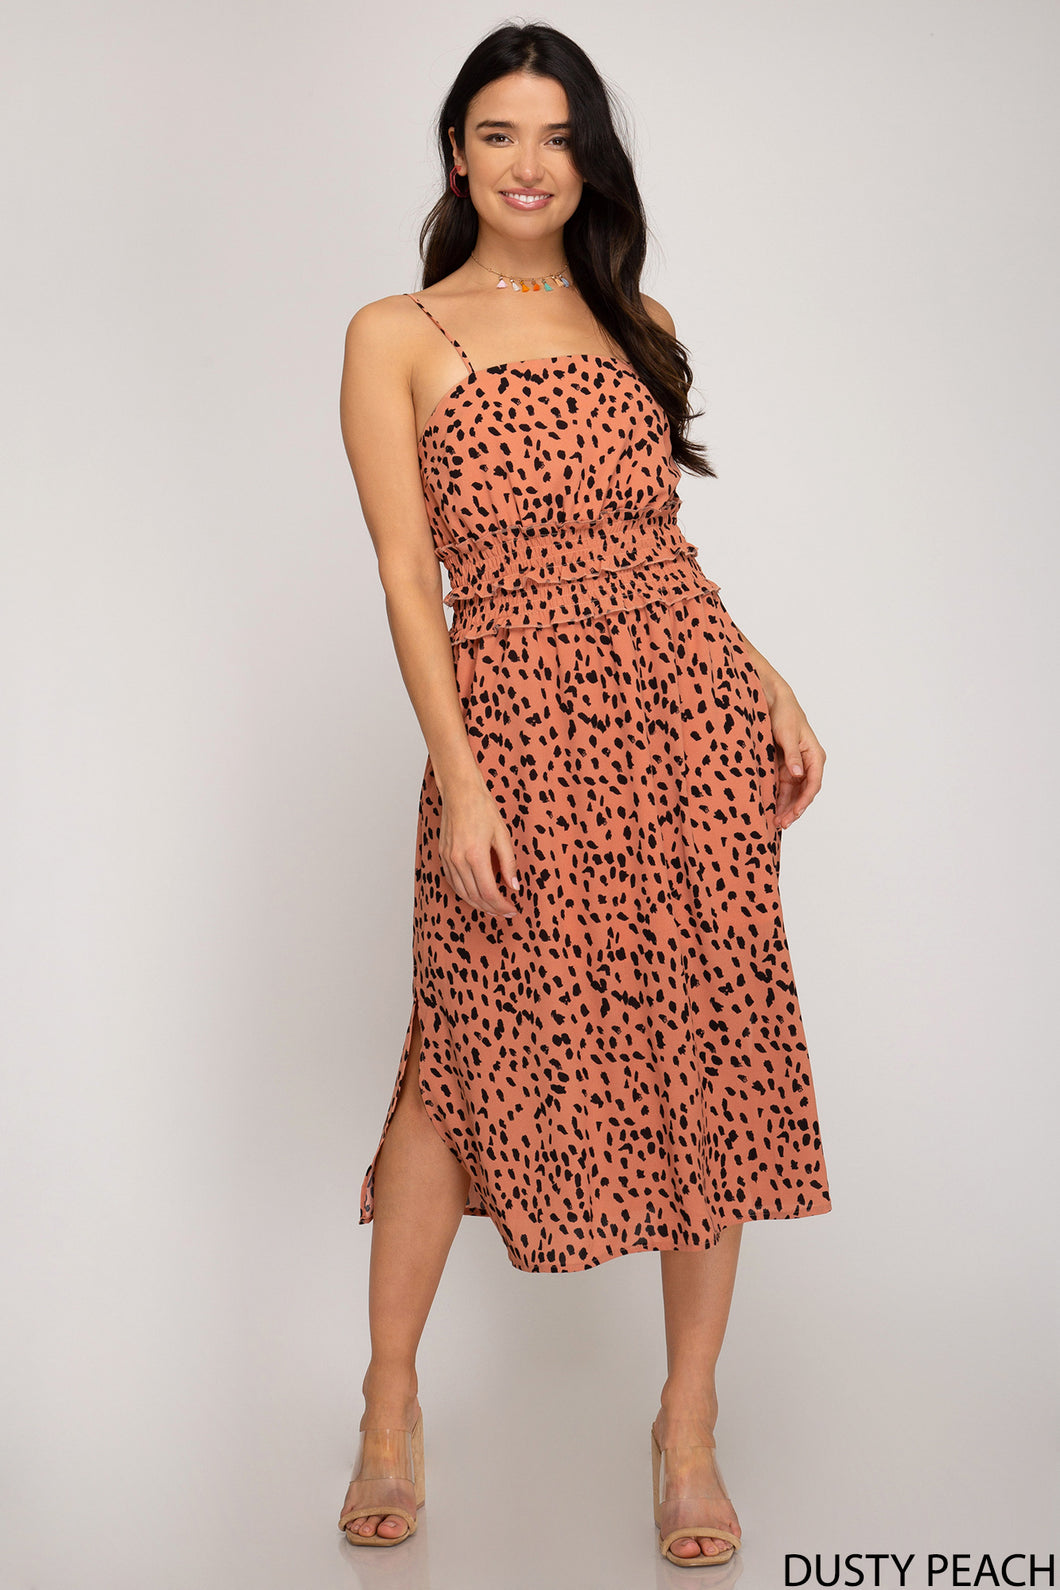 Dusty Peach Printed Dress